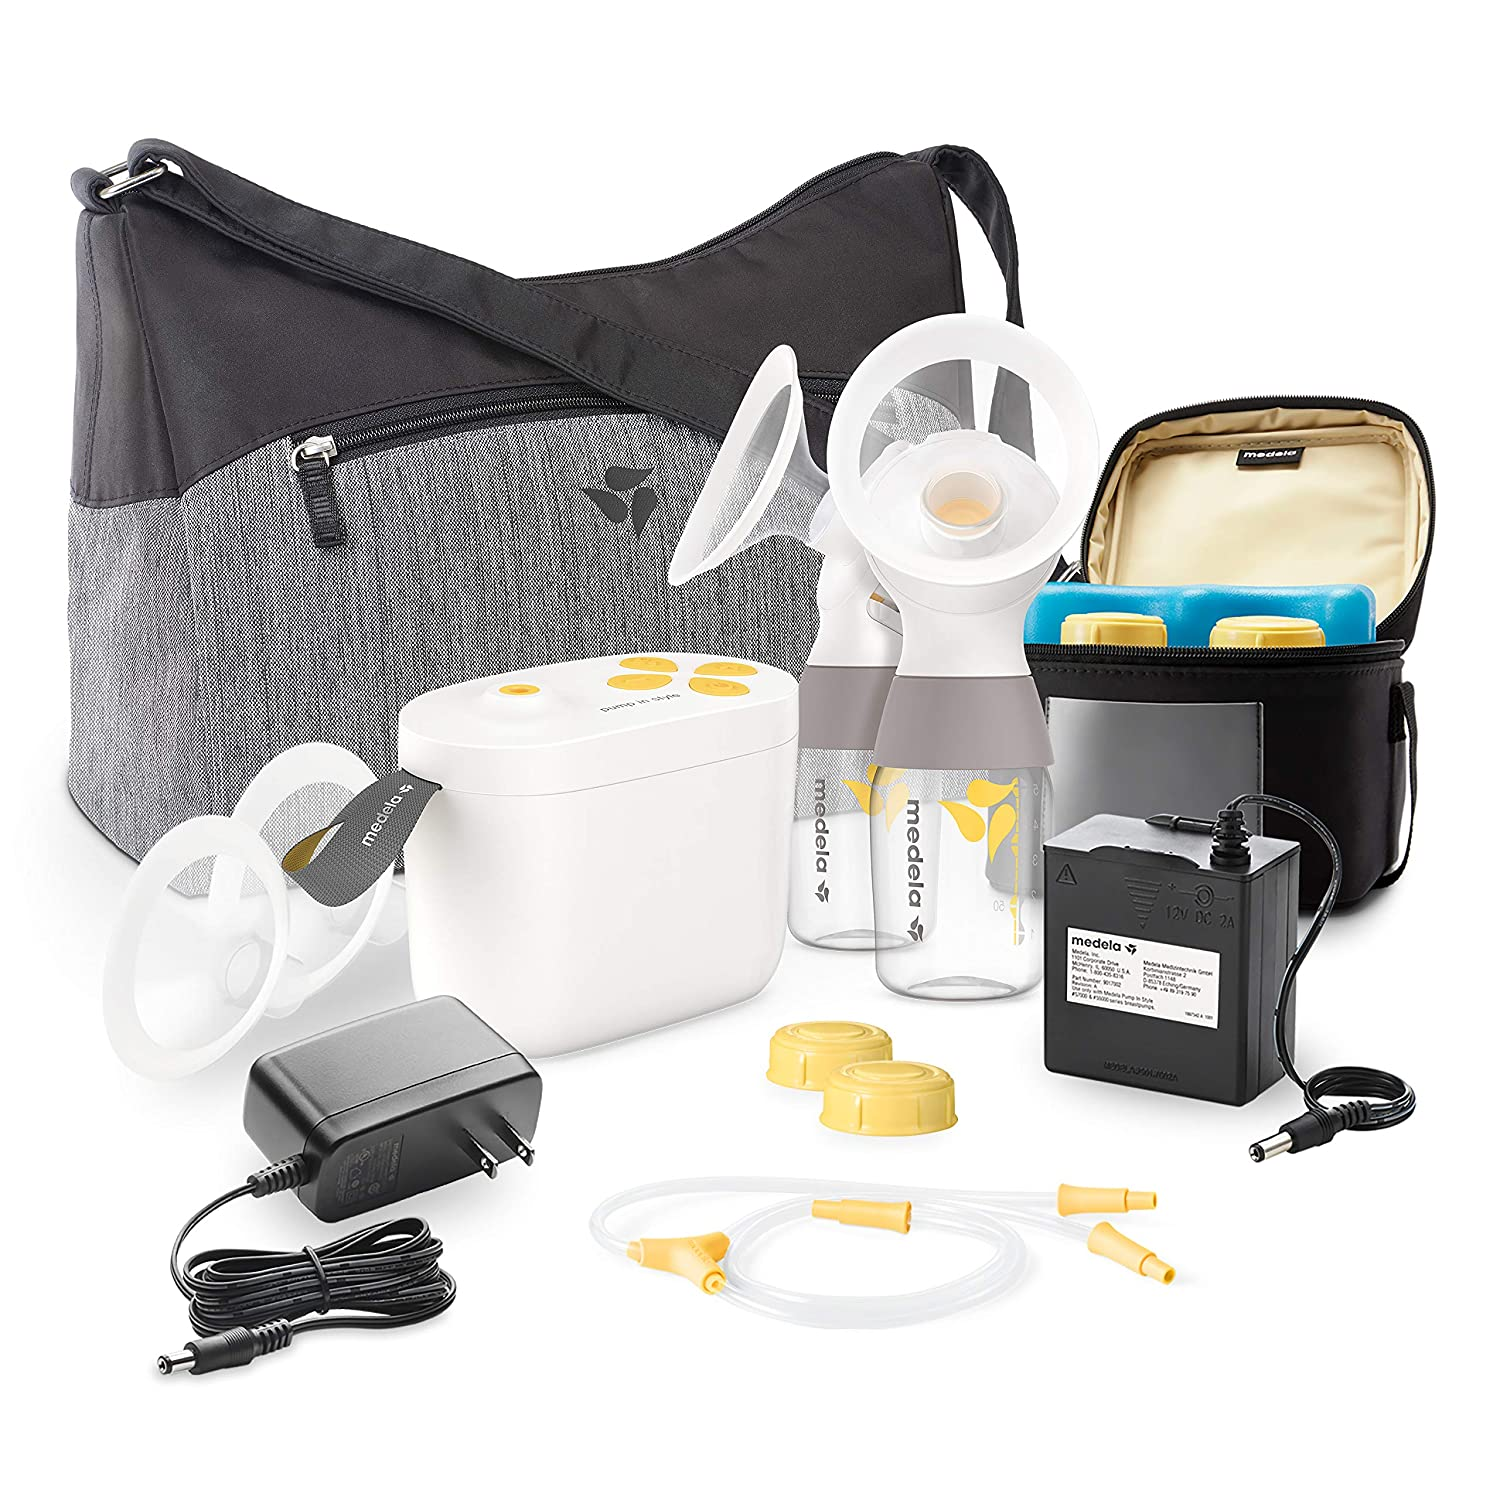 New Medela MaxFlow, Electric Breast Pump Closed System, Portable Breastpump